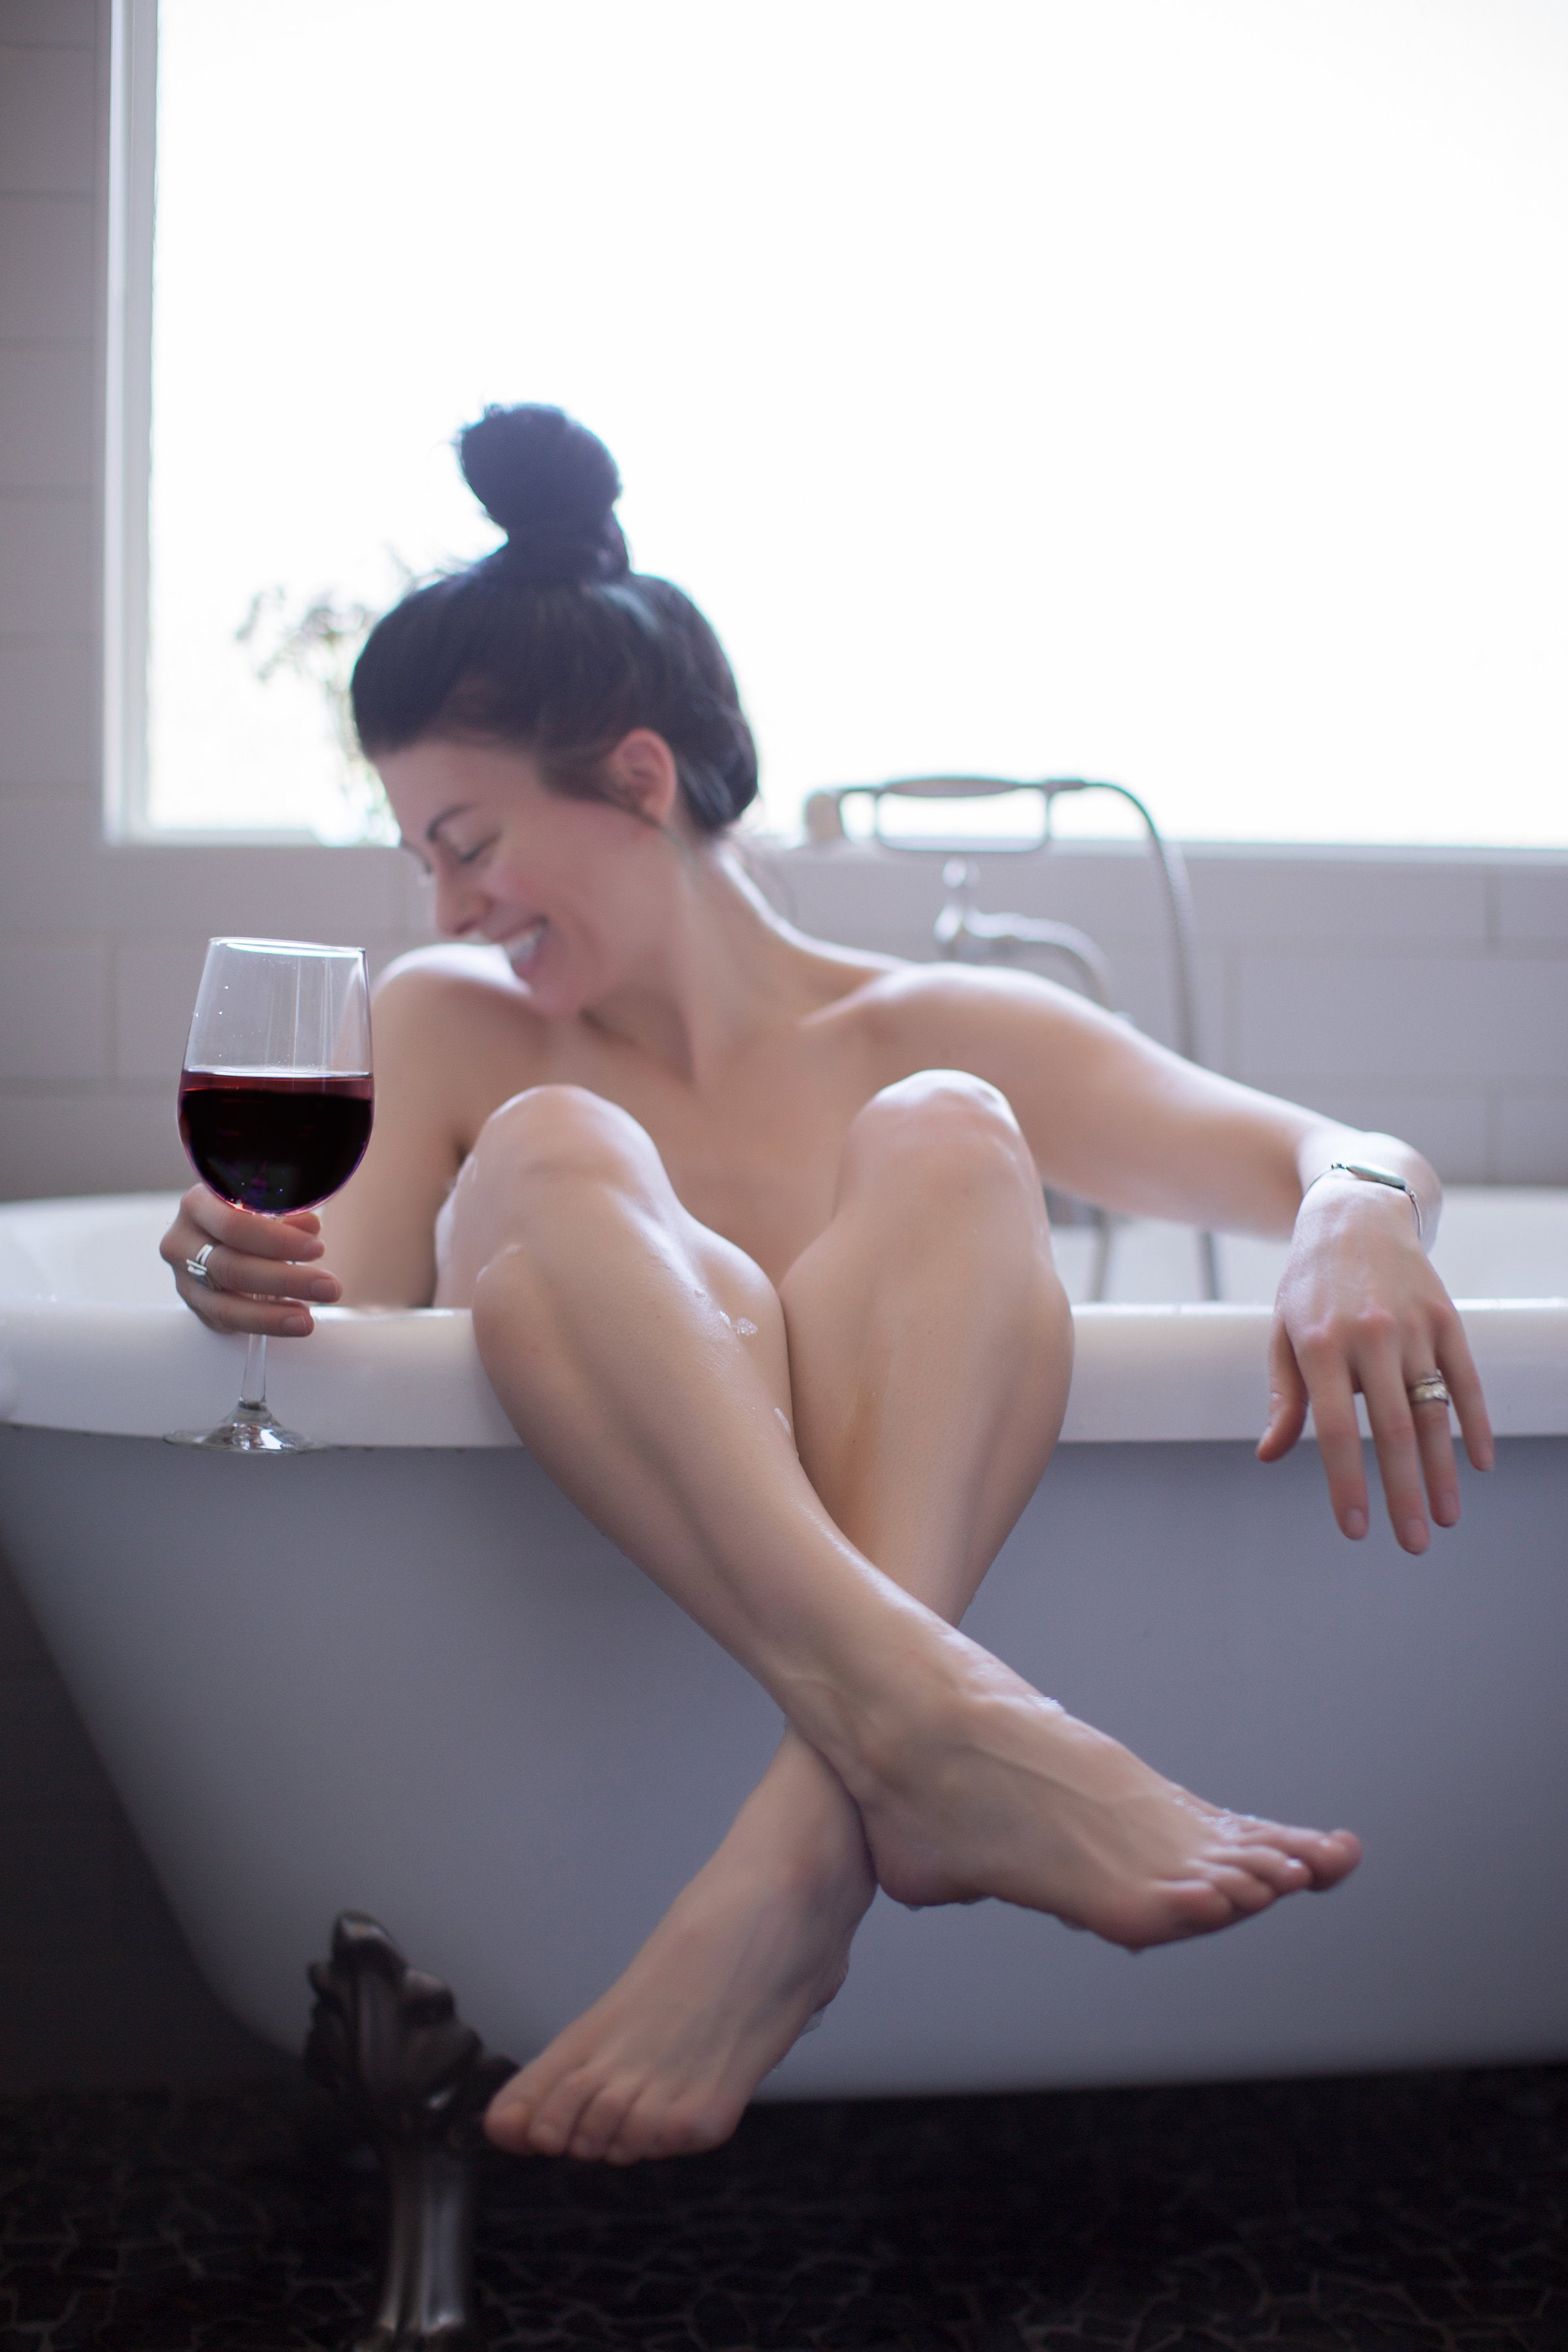 Enjoying a glass of TEMPT red blend wine in the bathtub